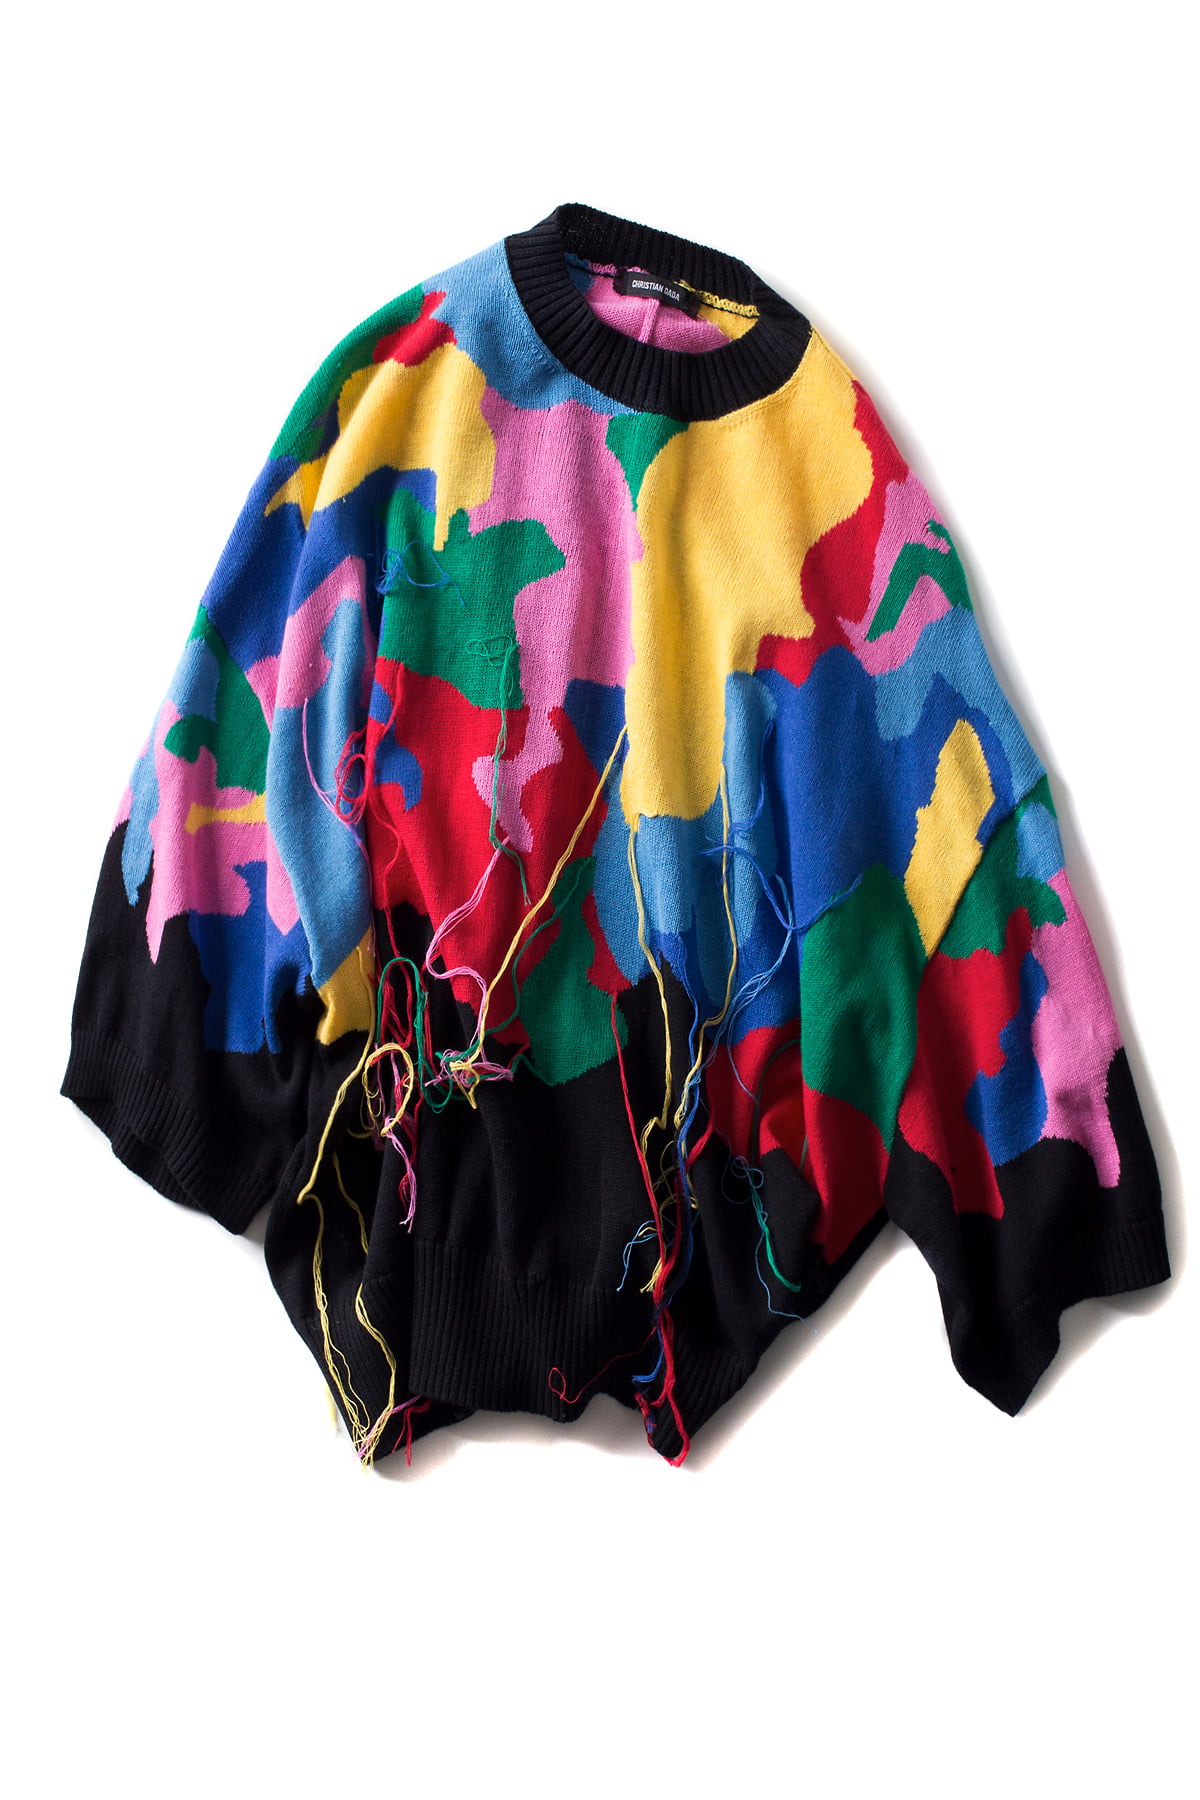 Christian Dada : Multicolored Liquidated Sweater